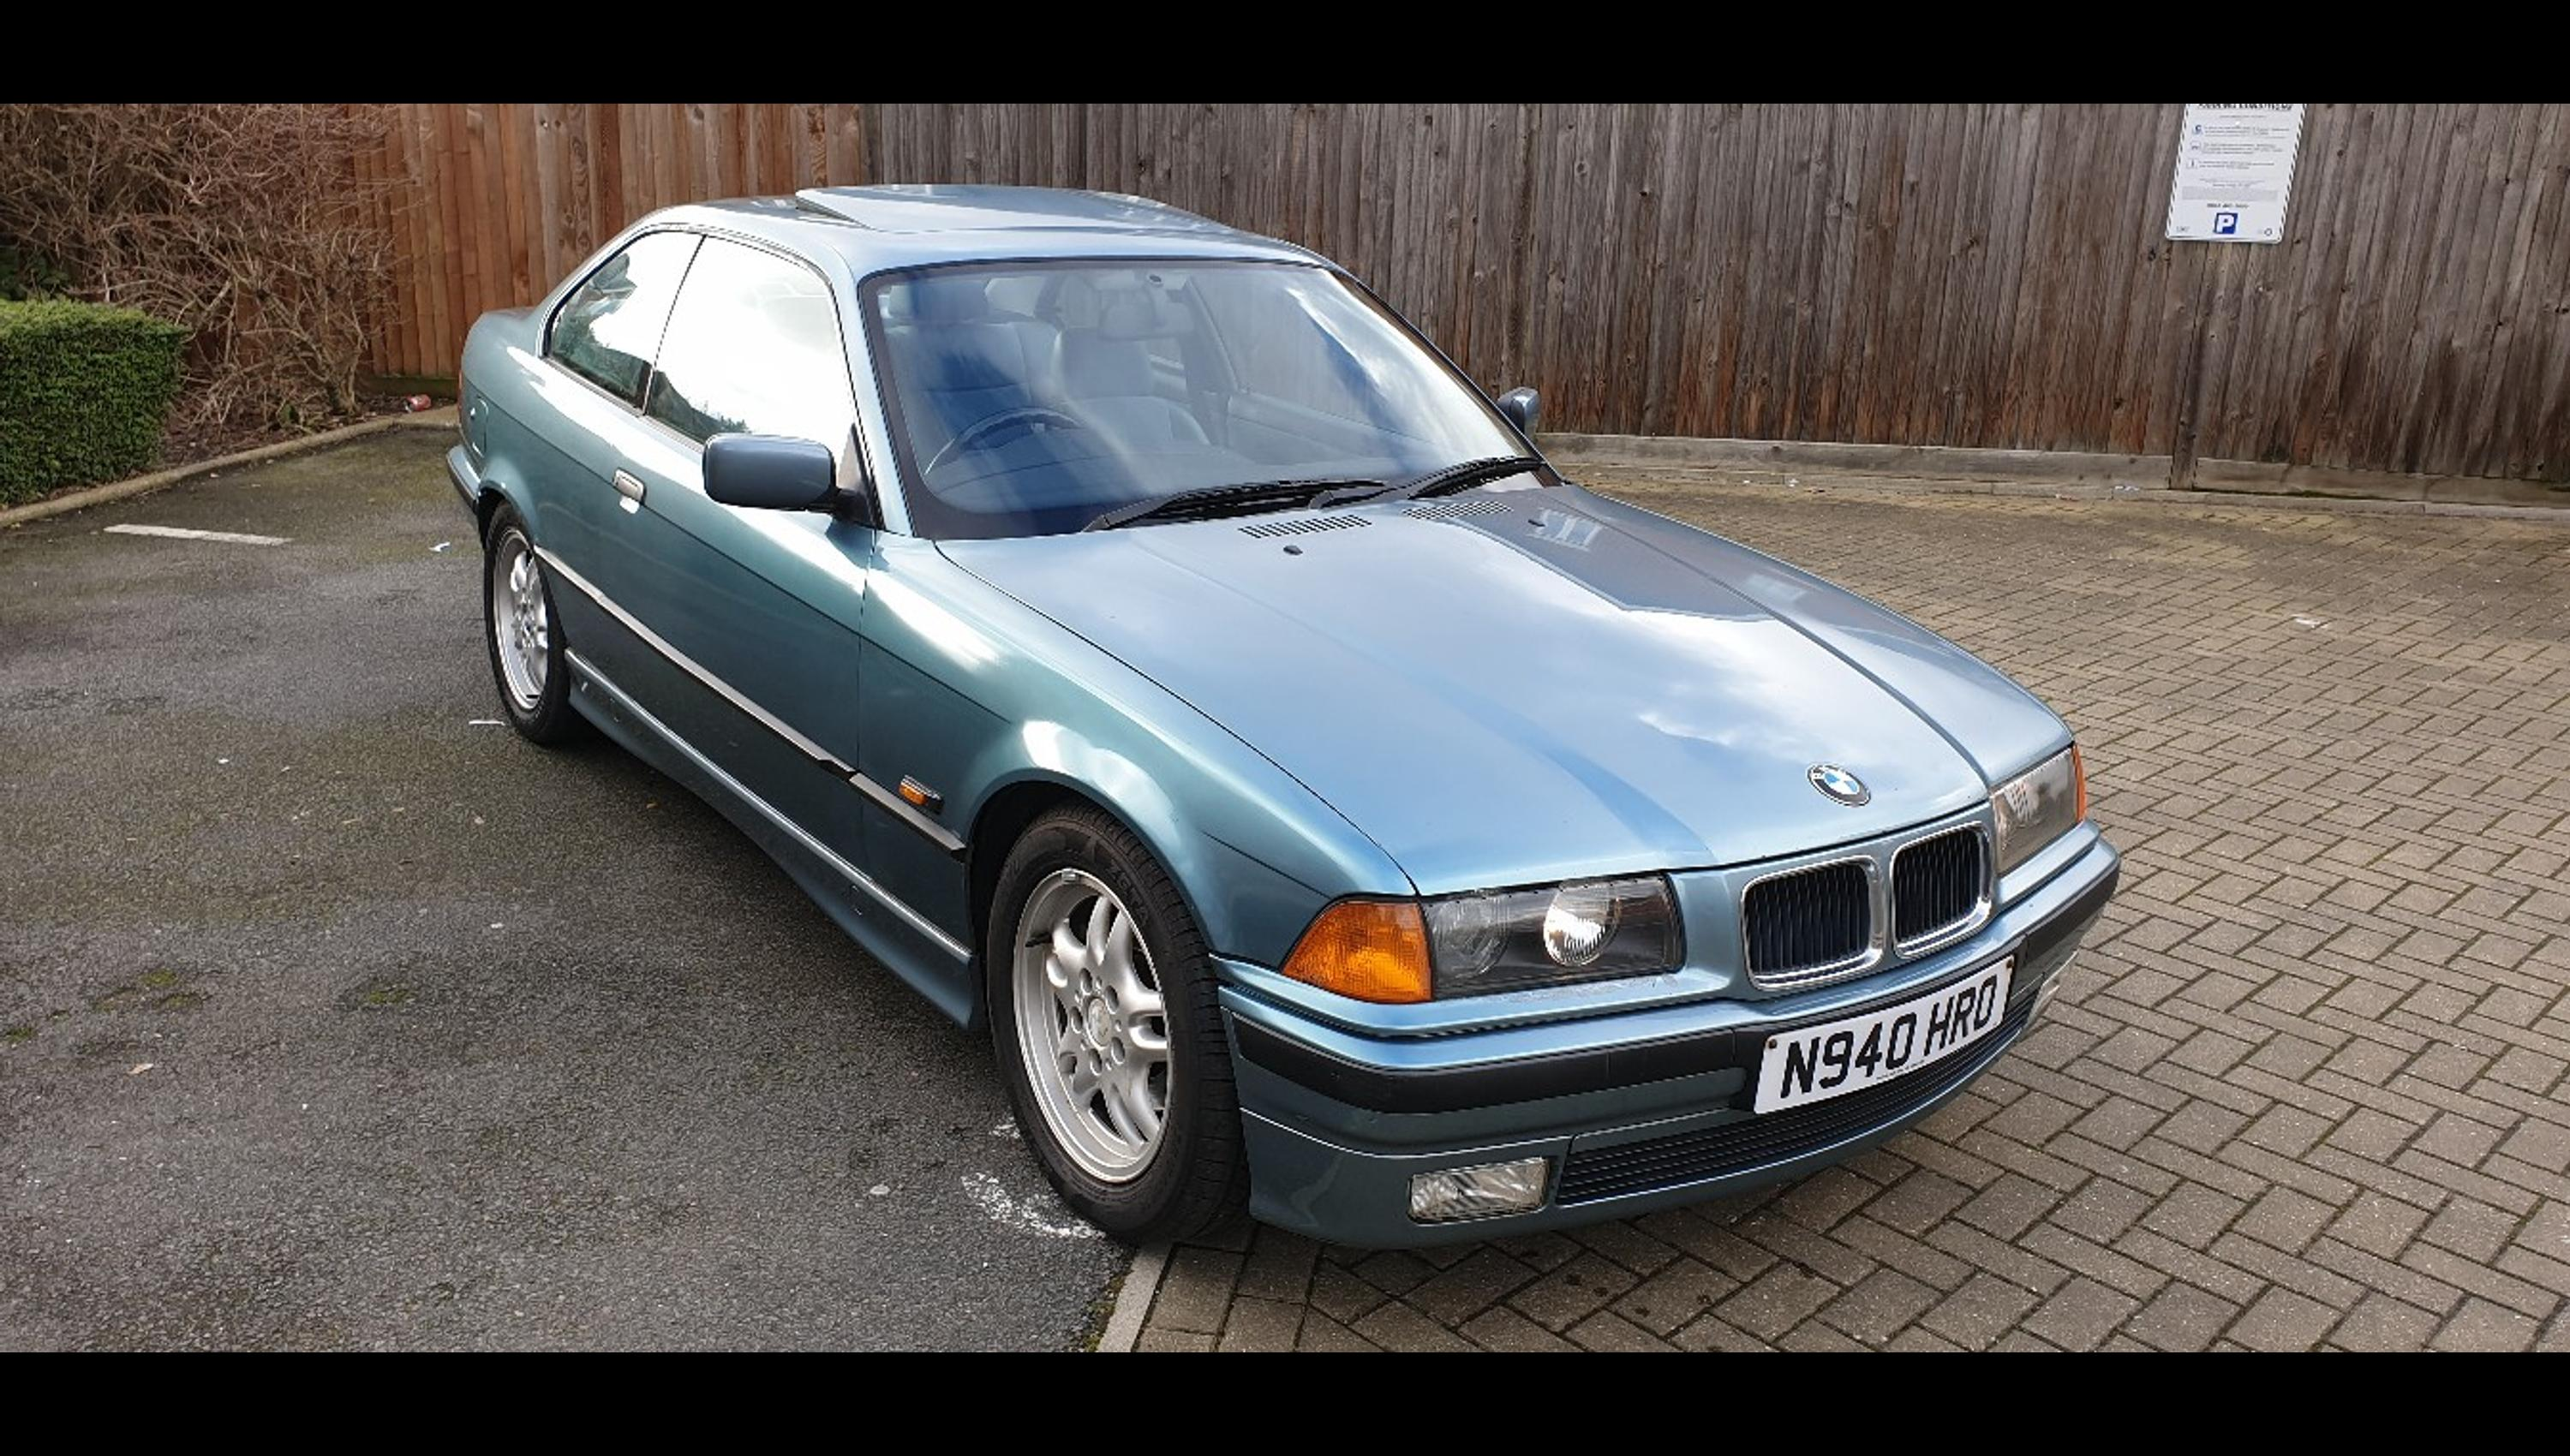 Bmw E36 328i Coupe Morea Green In Nw10 London For 1 100 00 For Sale Shpock